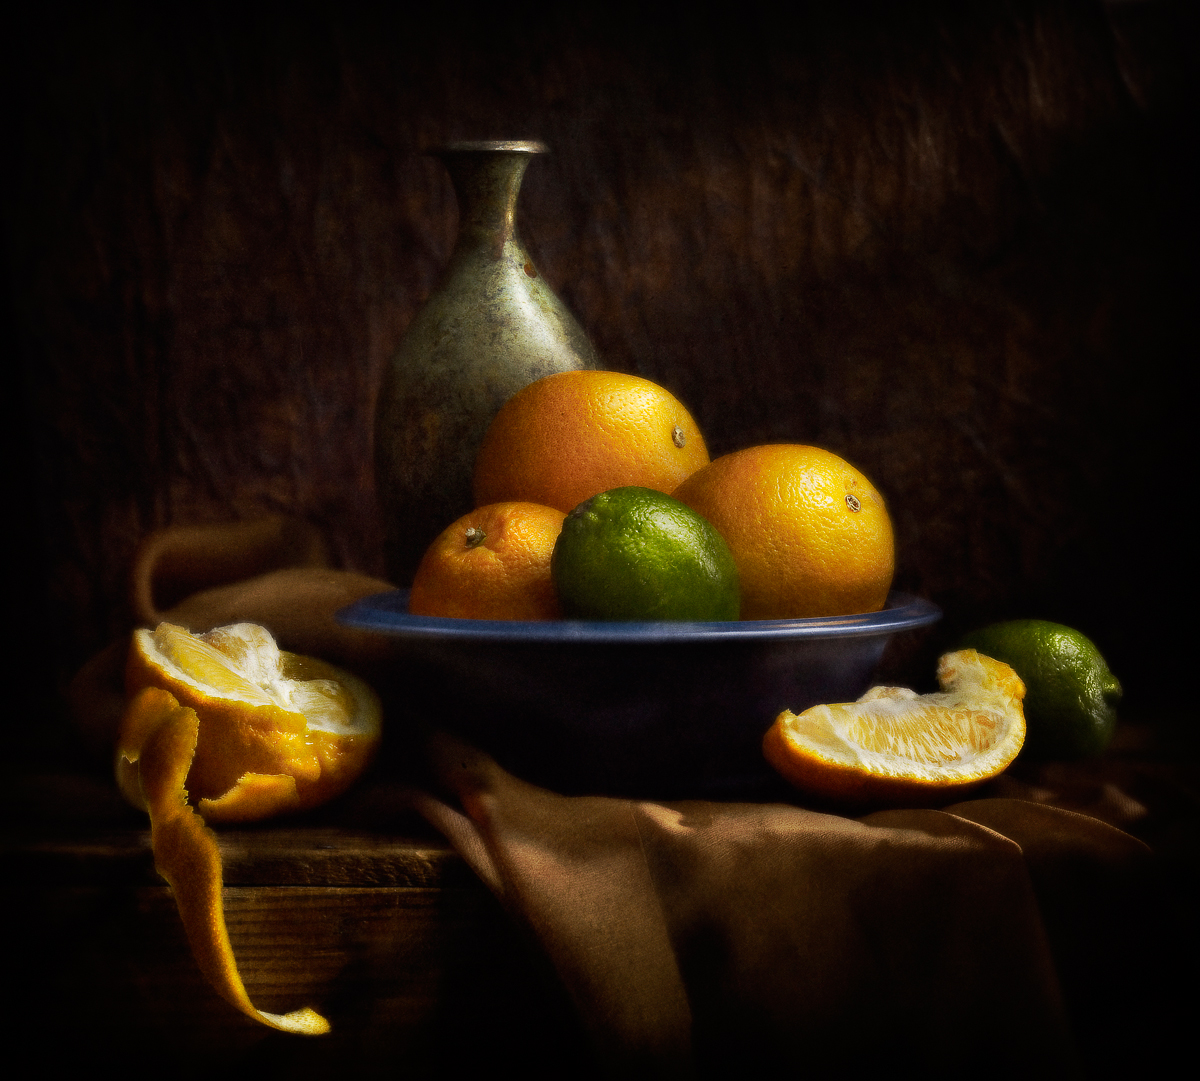 light painting still harold ross fine fruit photographer workshops artists nature haroldrossfineart photograph painted instructor texture